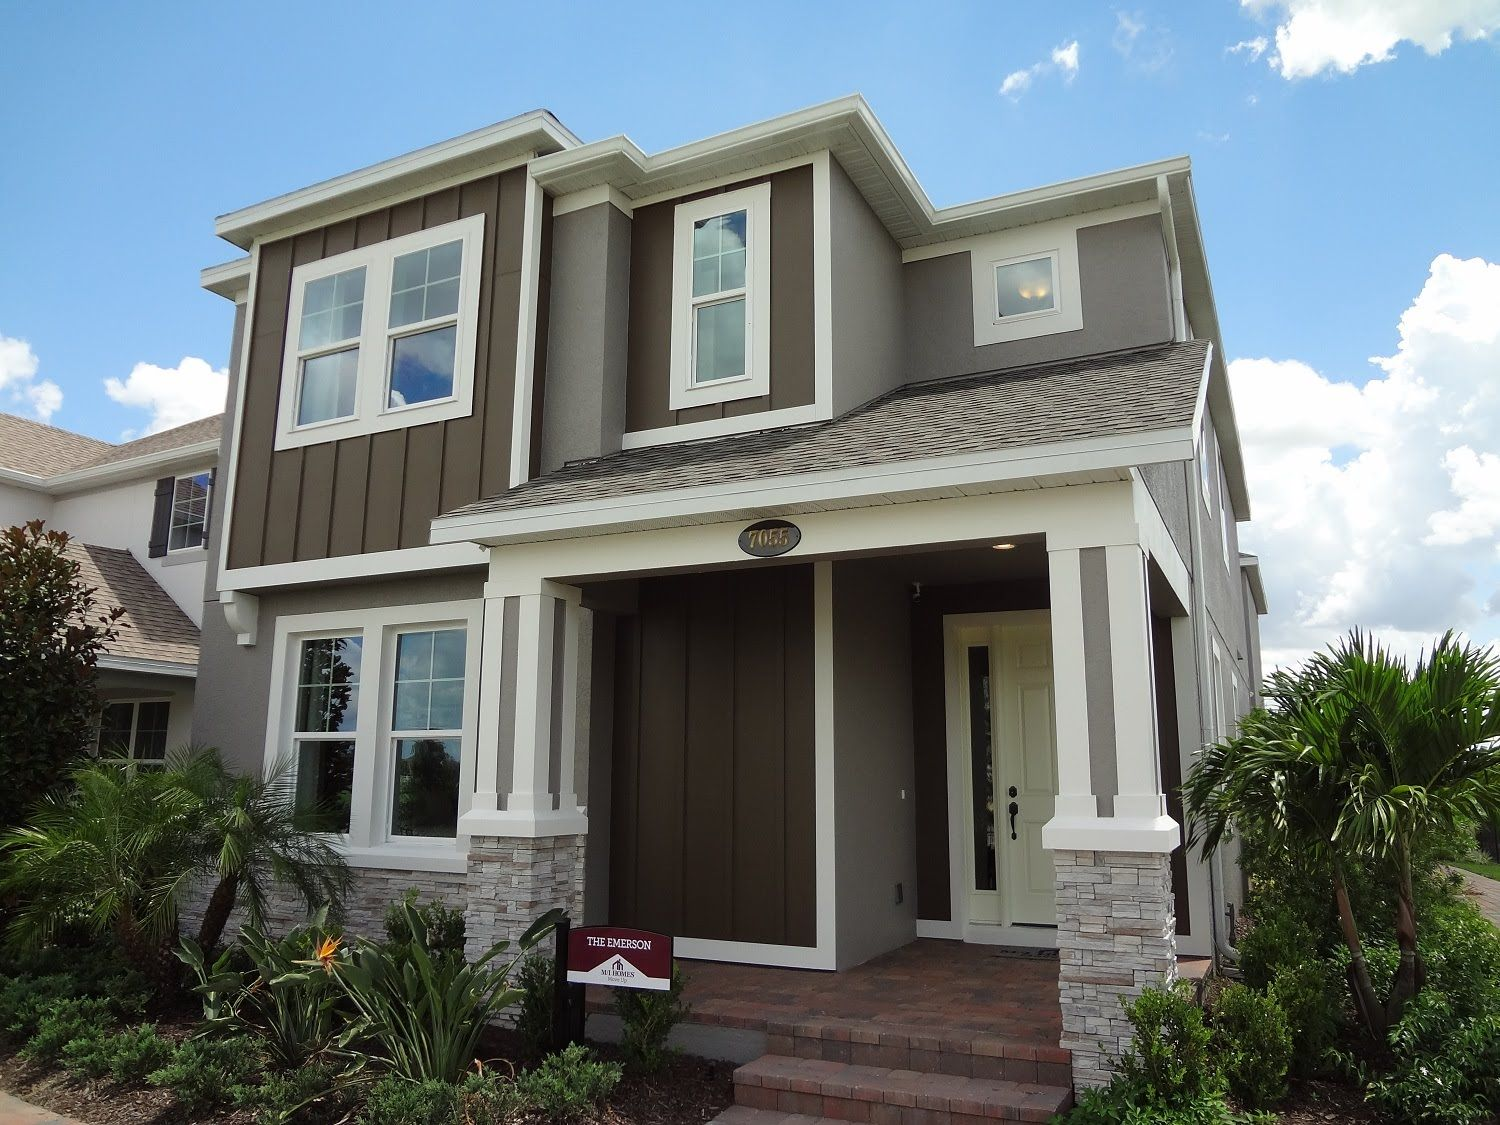 summerlake by m i homes the emerson model winter garden new